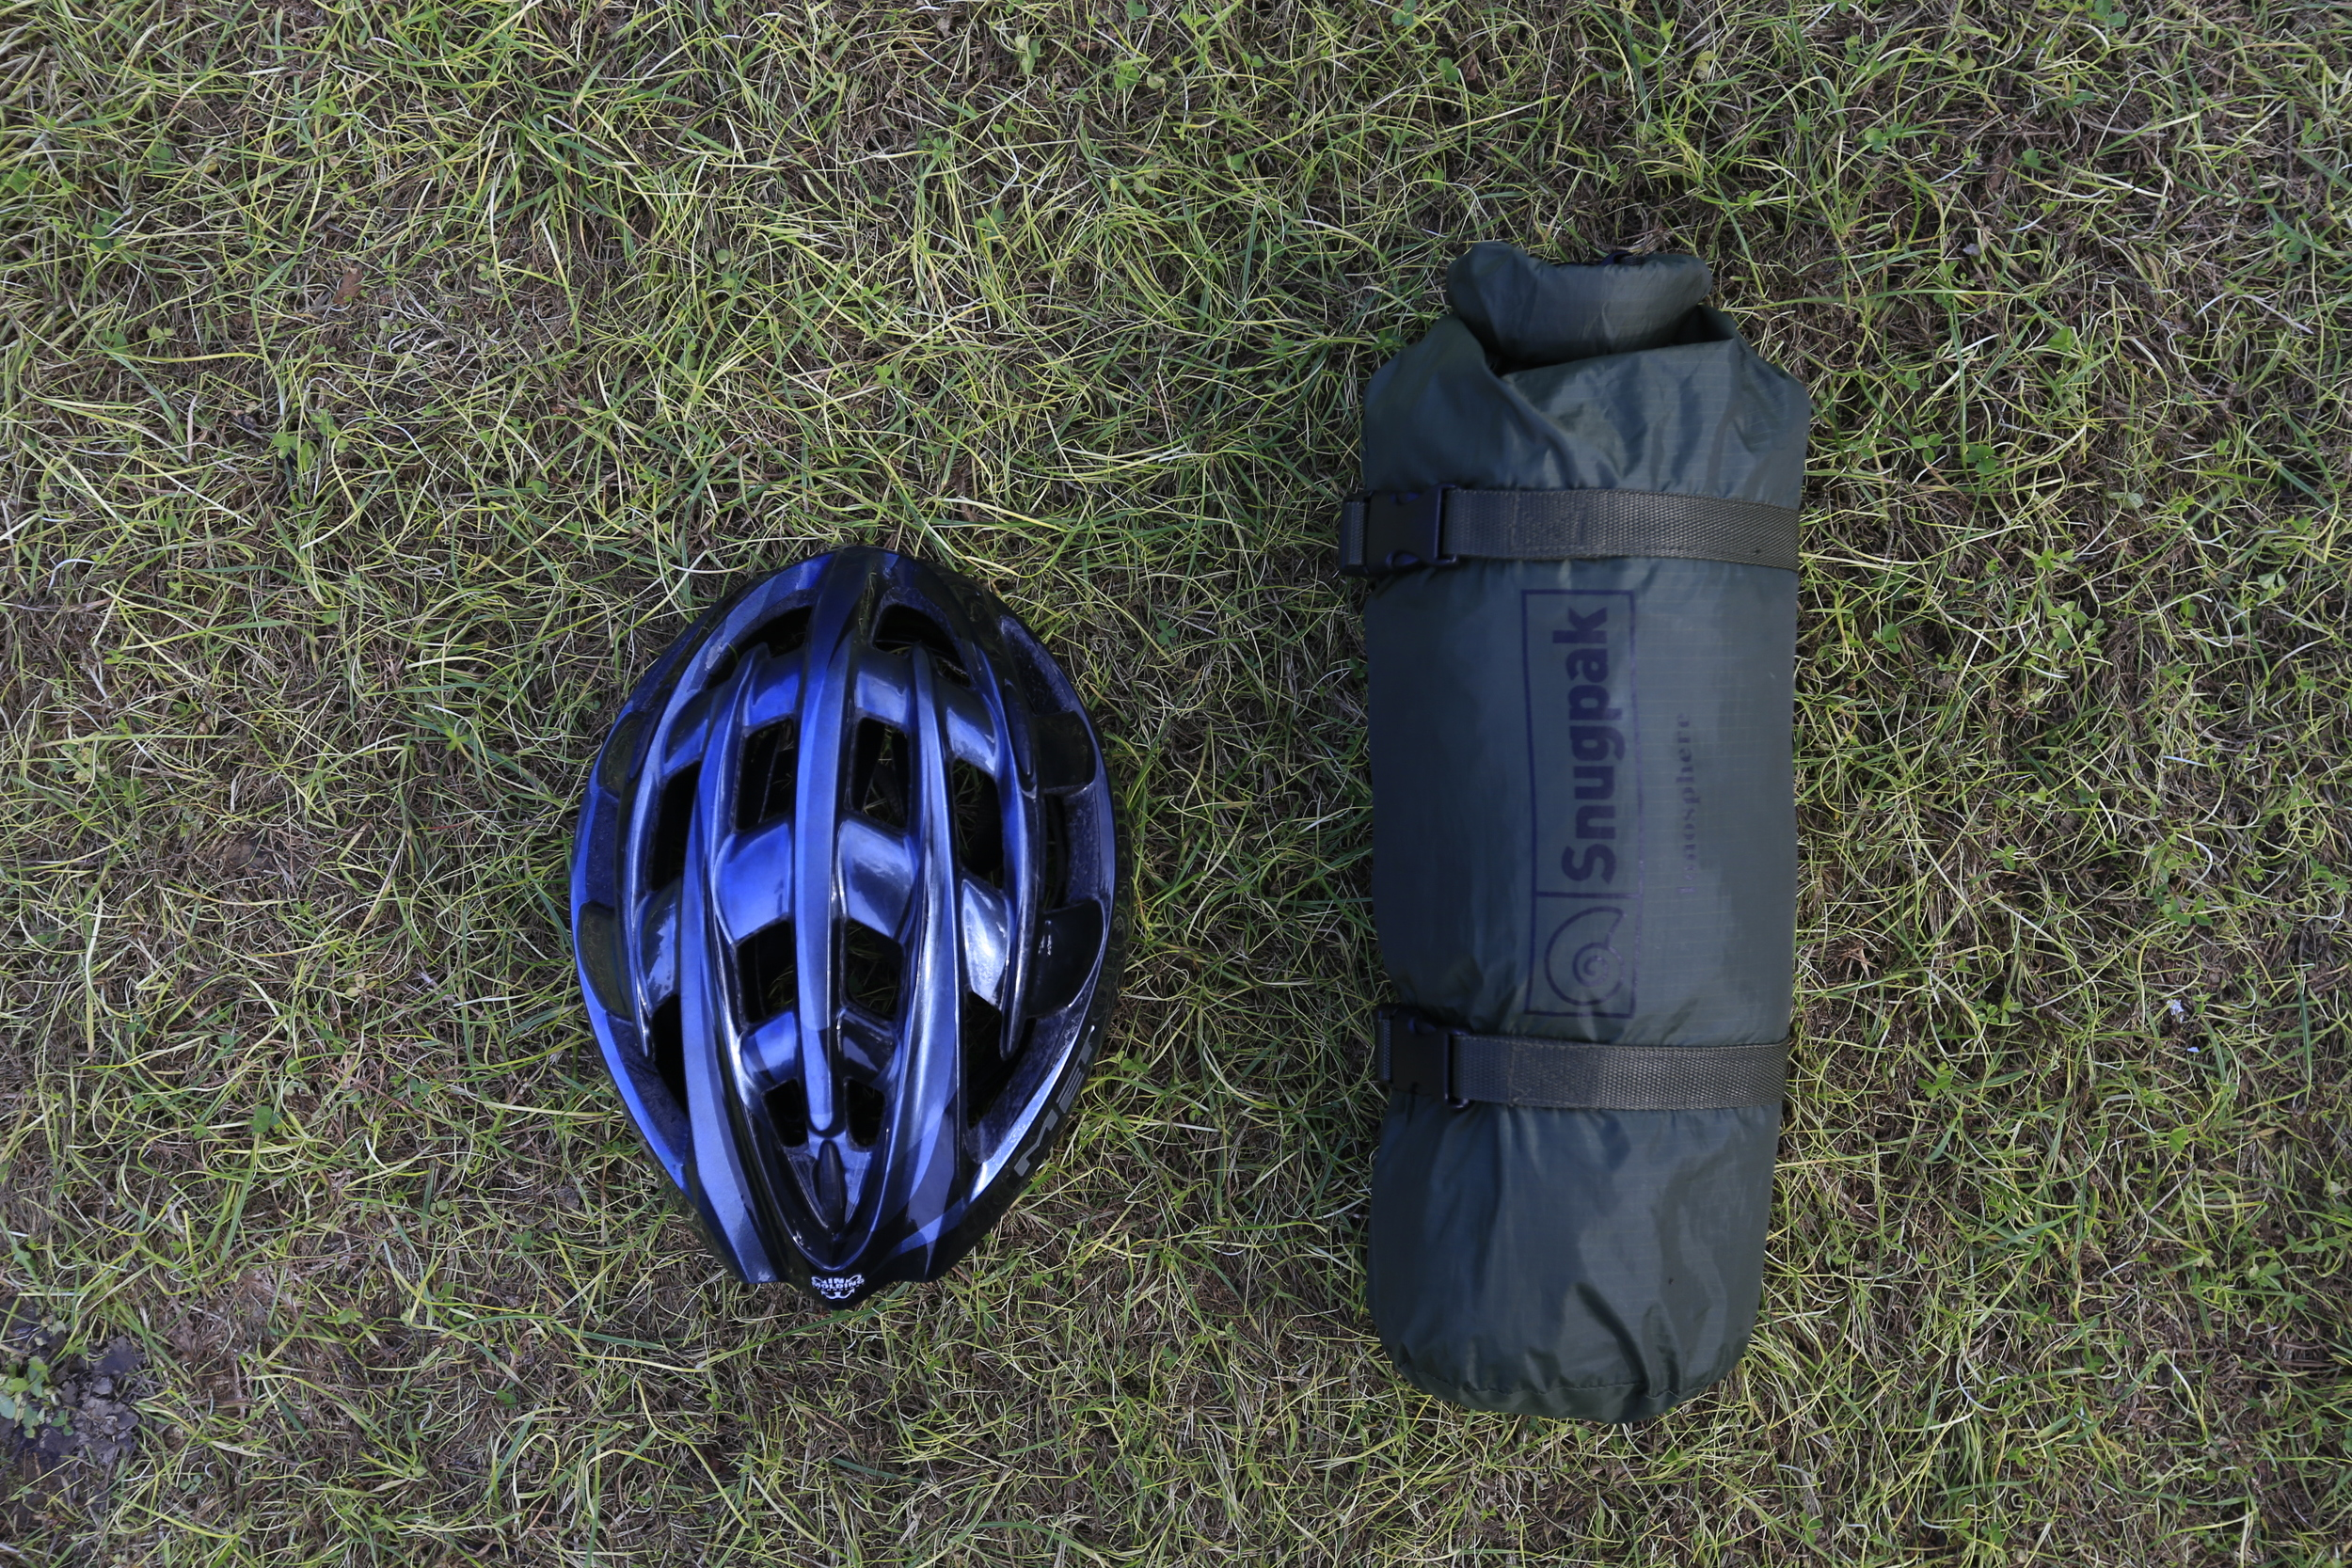 snugpak, snugpak tents, snugpak ionosphere, bicycle touring apocalypse, bikepacking, bikepacking tent, lightweight camping, camping, travel, exploration, travel blog, bikepacking blog, photography, gear review, cycling gear, cycling, cycle, bicycle